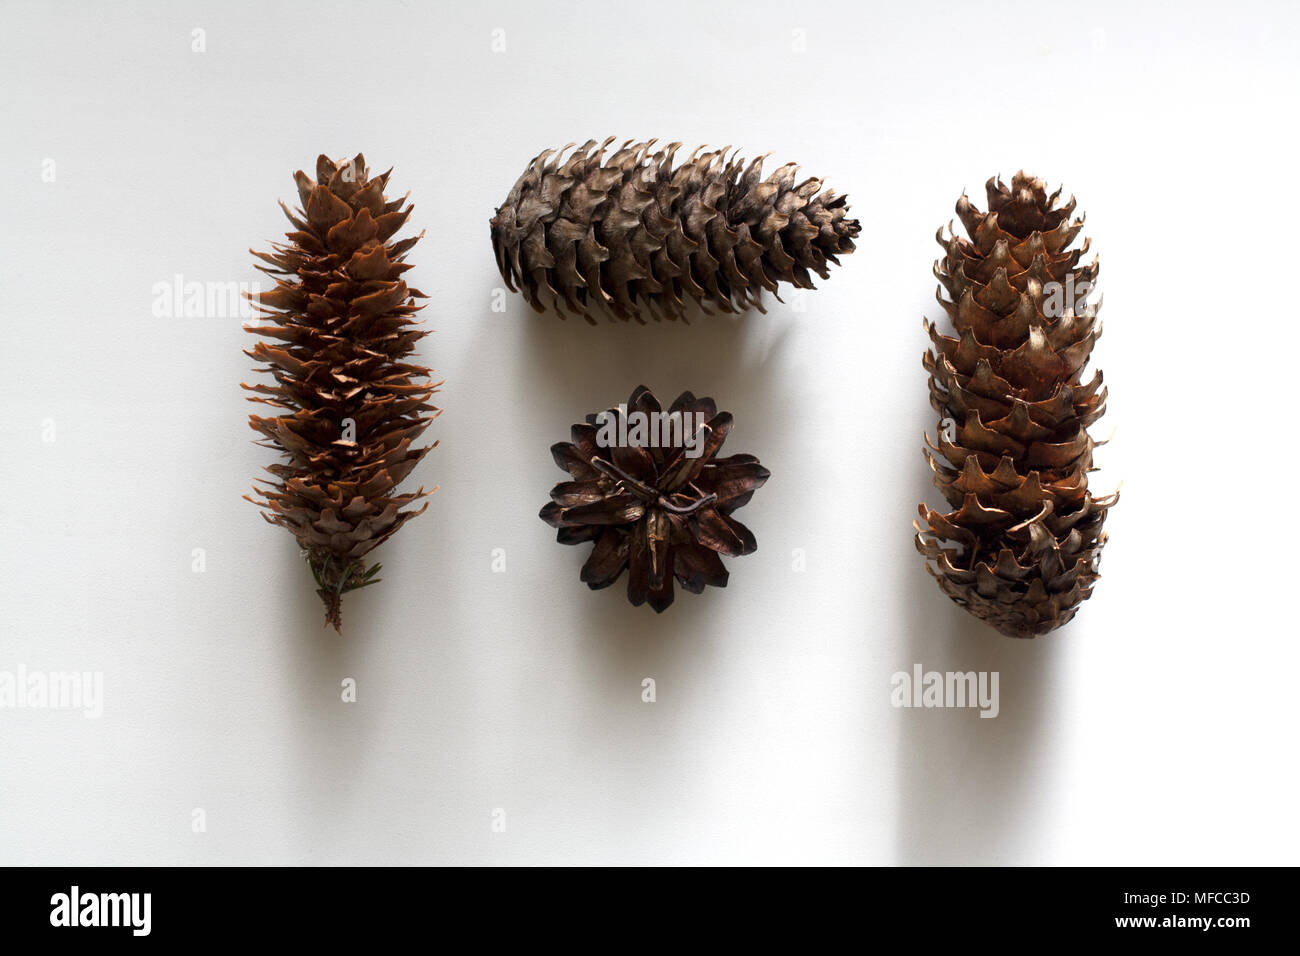 Four conifer cones isolated on white background from a high angle view - Stock Image